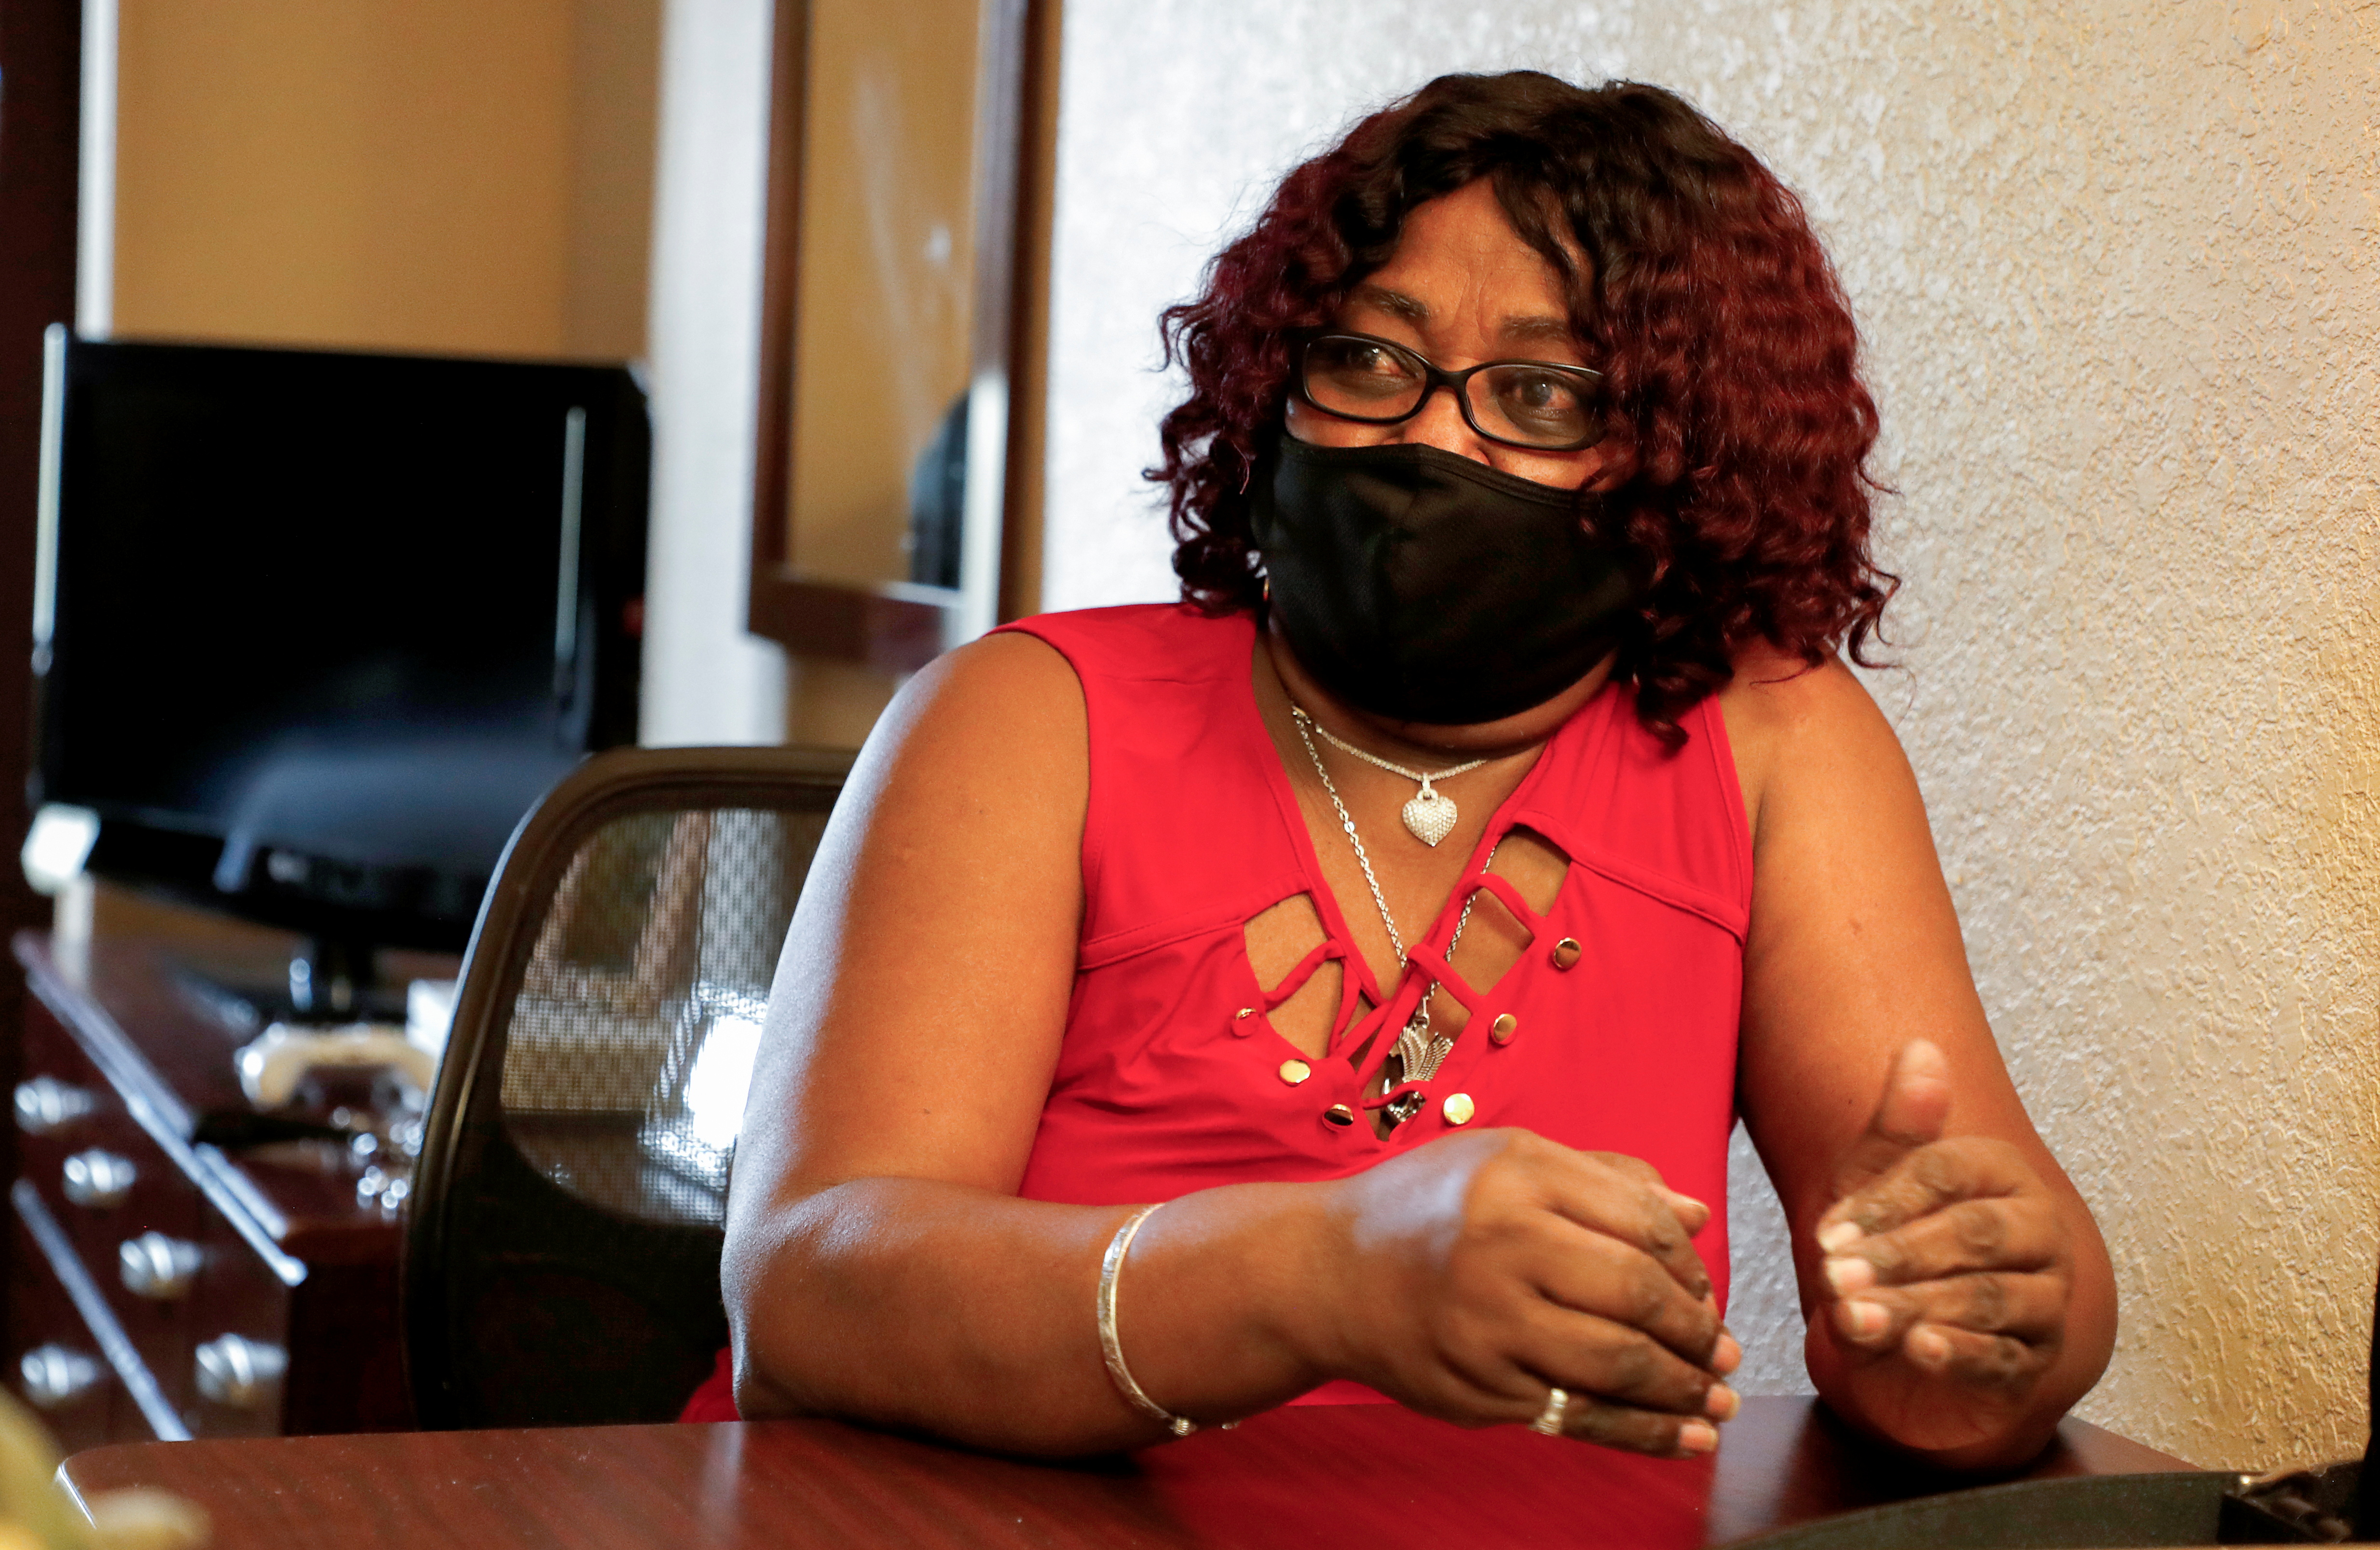 Greyhound Bus driver Marvia Robinson speaks with Reuters in her hotel room in Orlando, Florida, U.S., March 28, 2021. Picture taken March 28, 2021.  REUTERS/Joe Skipper